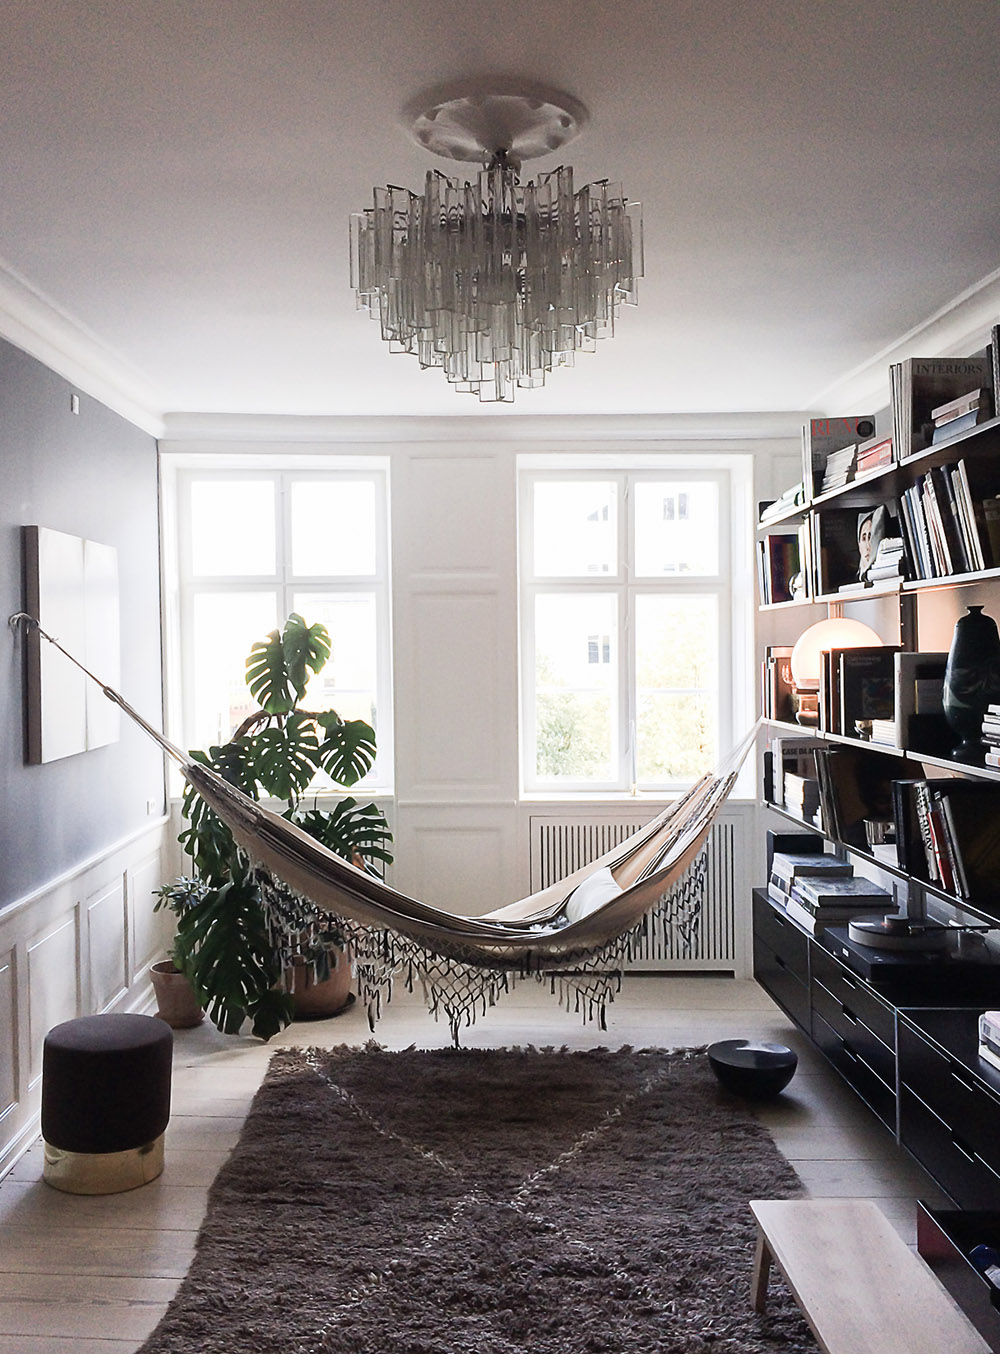 Woman Cave Design Ideas - The Apartment Gallery, Interior Design by Ilse Crawford, Photo by Daniella Witte - she shed - hammocks inside